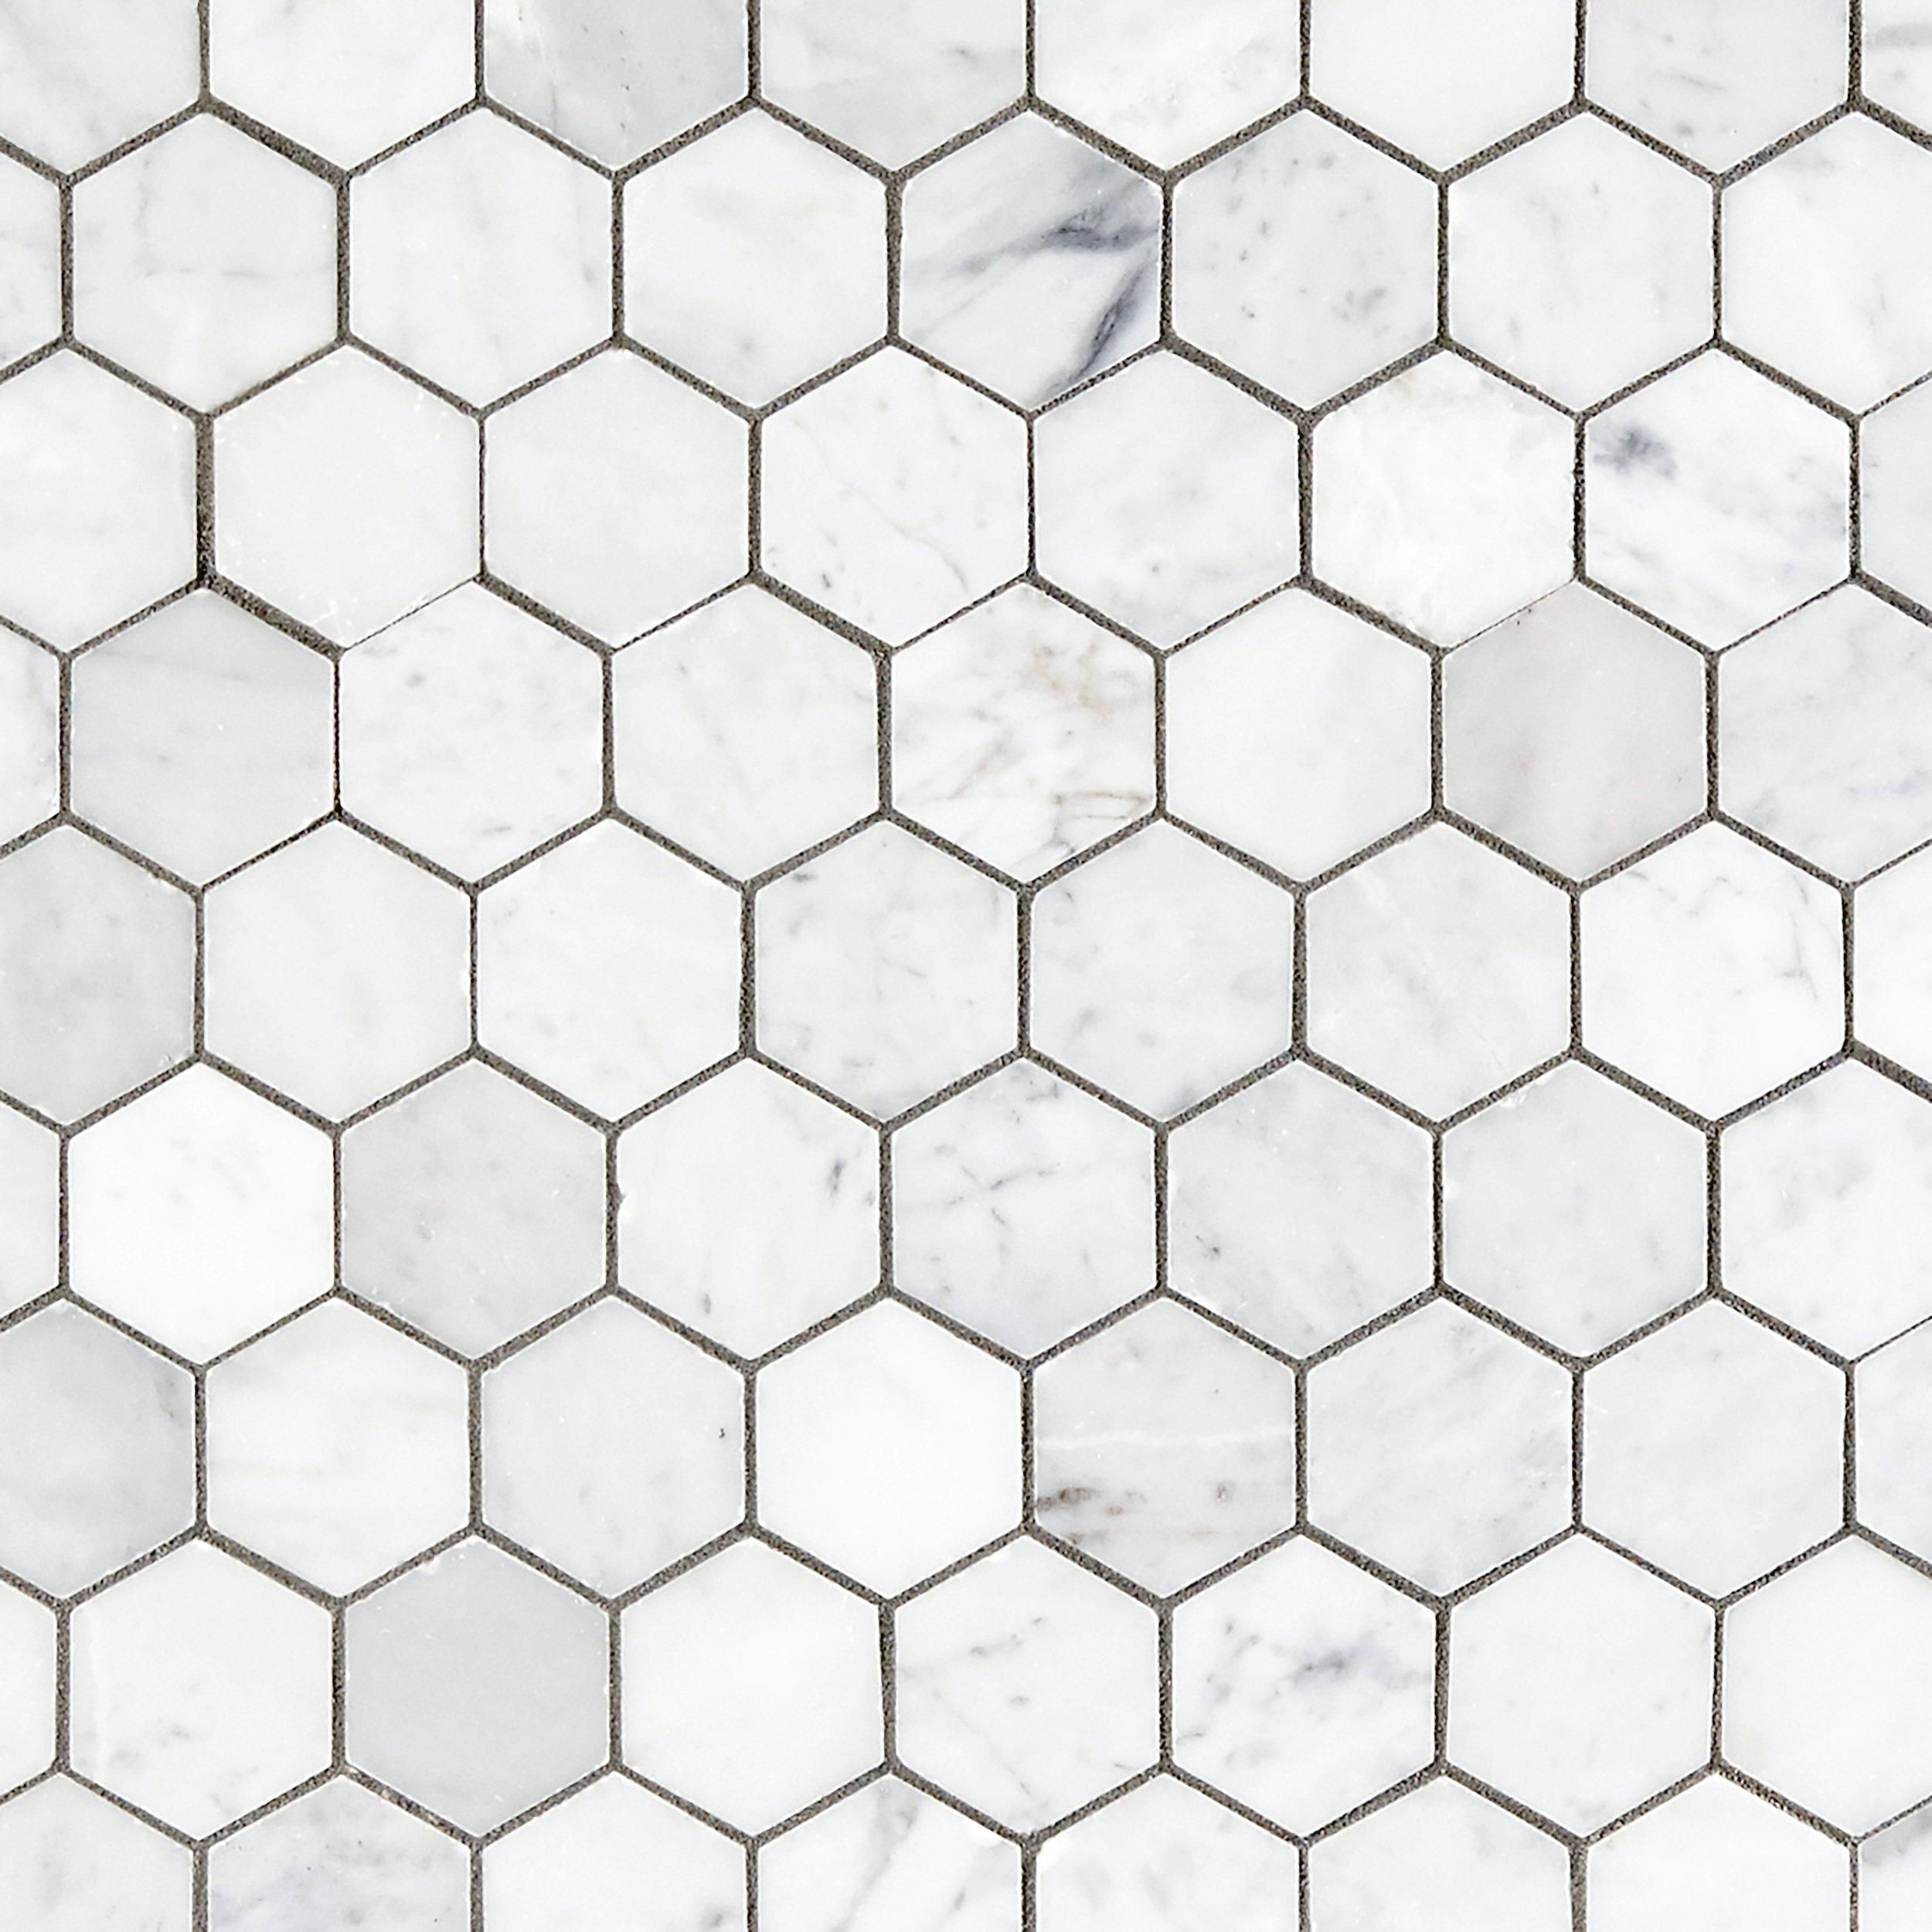 Bianco carrara hexagon polished marble mosaic 2in x 2in bianco carrara hexagon polished marble mosaic 2in x 2in 931100750 floor and decor dailygadgetfo Gallery